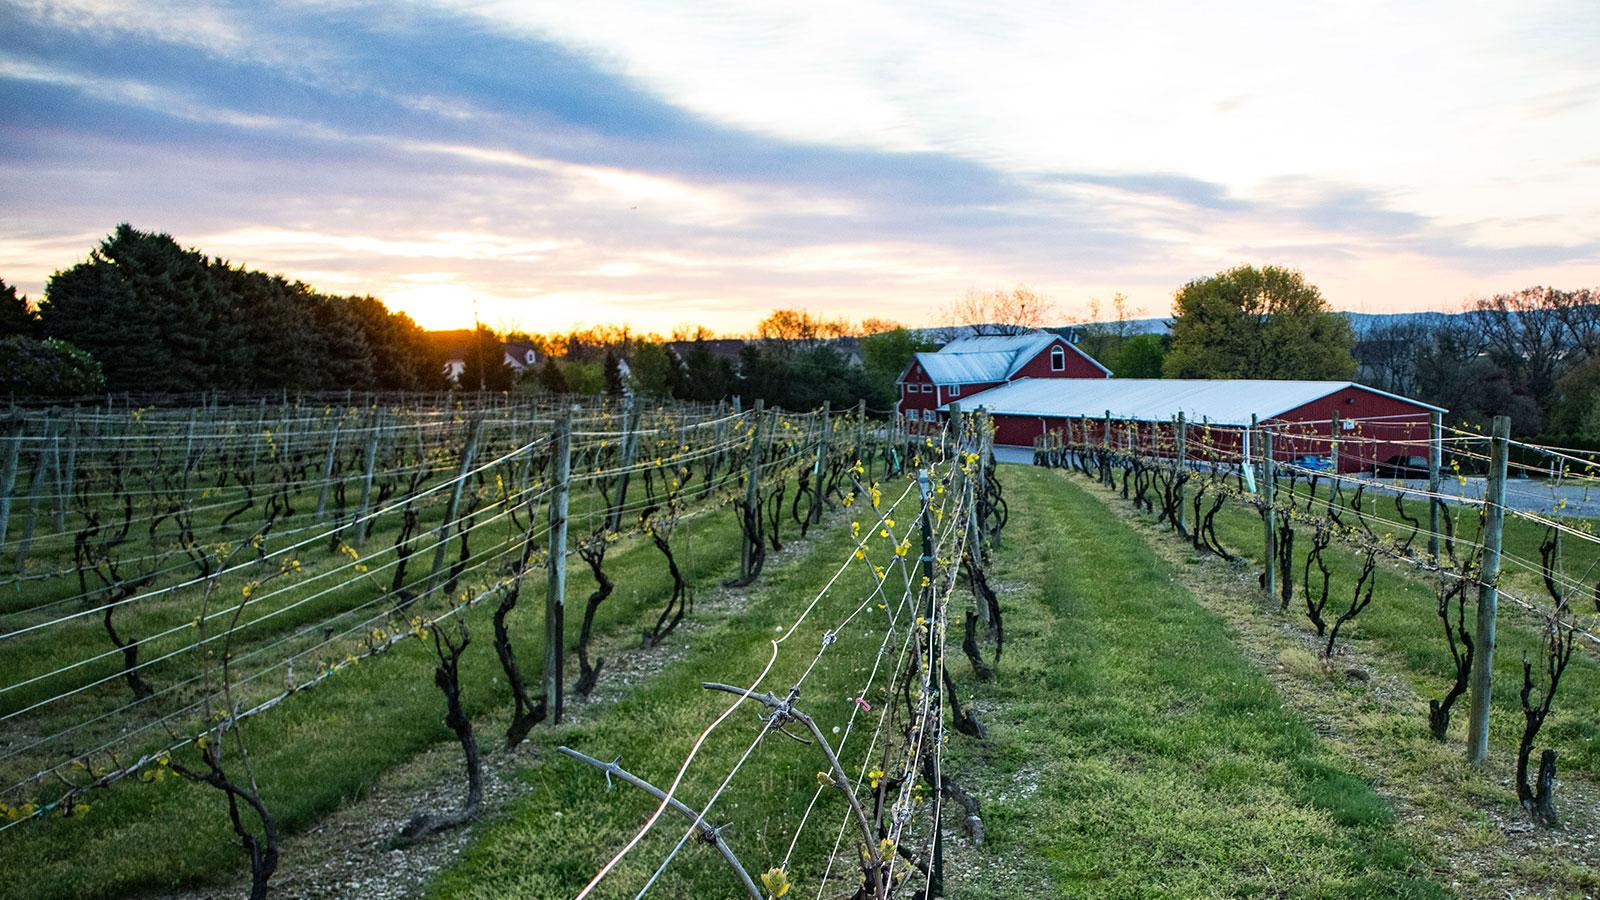 U.S. Wineries Cautiously Begin Reopening Phase